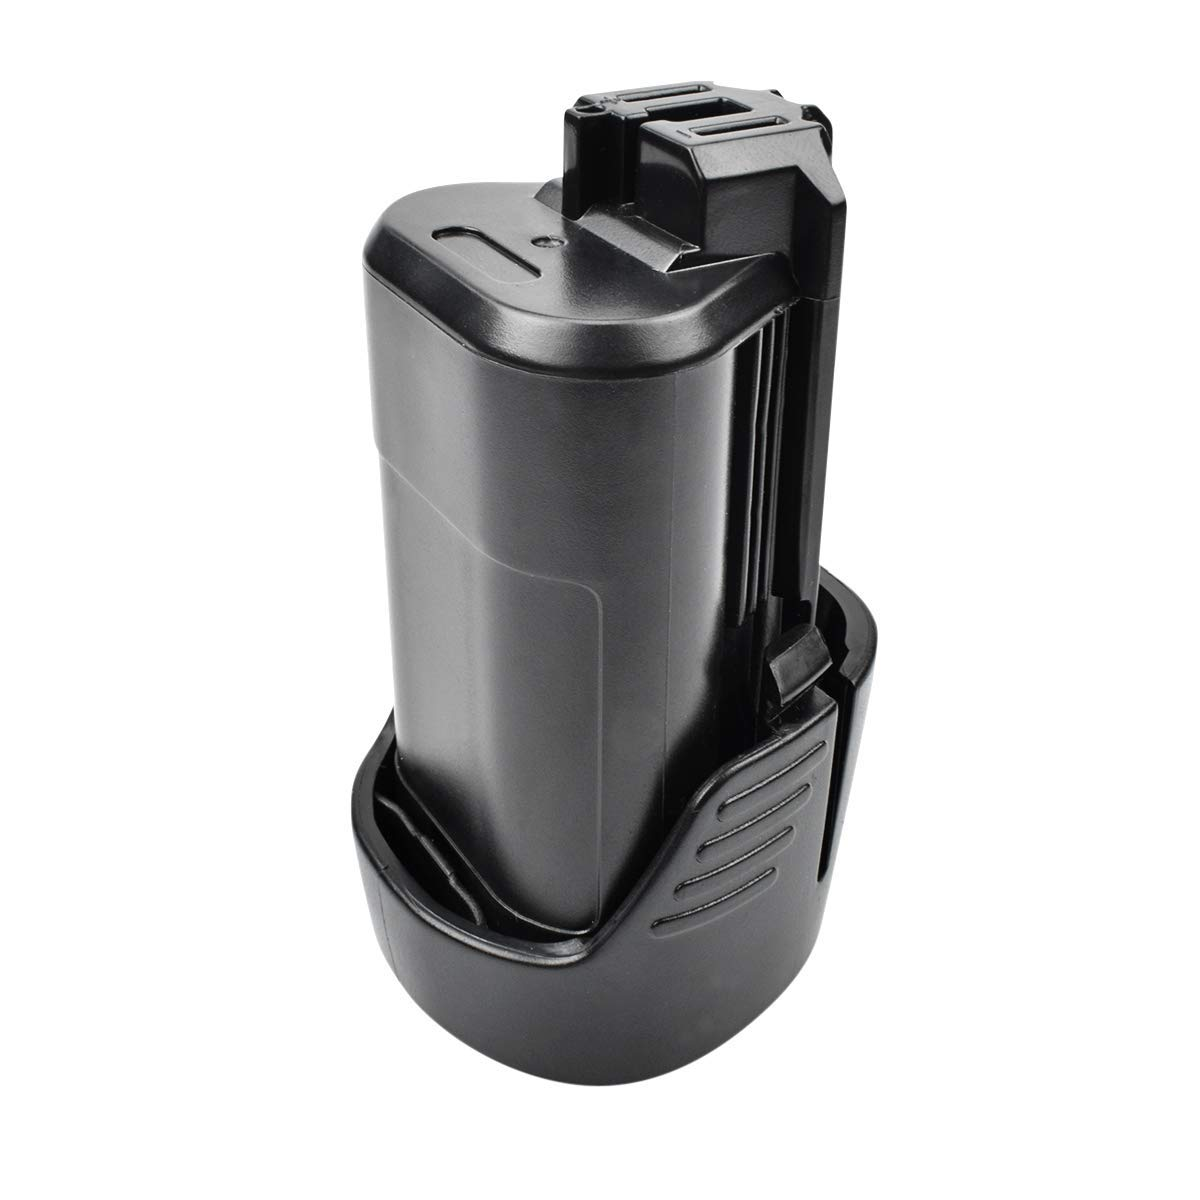 Turpow 12V 2500mAh Li-ion Battery Compatible with Bosch BAT411 BAT411A BAT412A BAT412 BAT413 BAT413A BAT414 D-70745 2607336013 26073360 Power Cordless Drill Battery